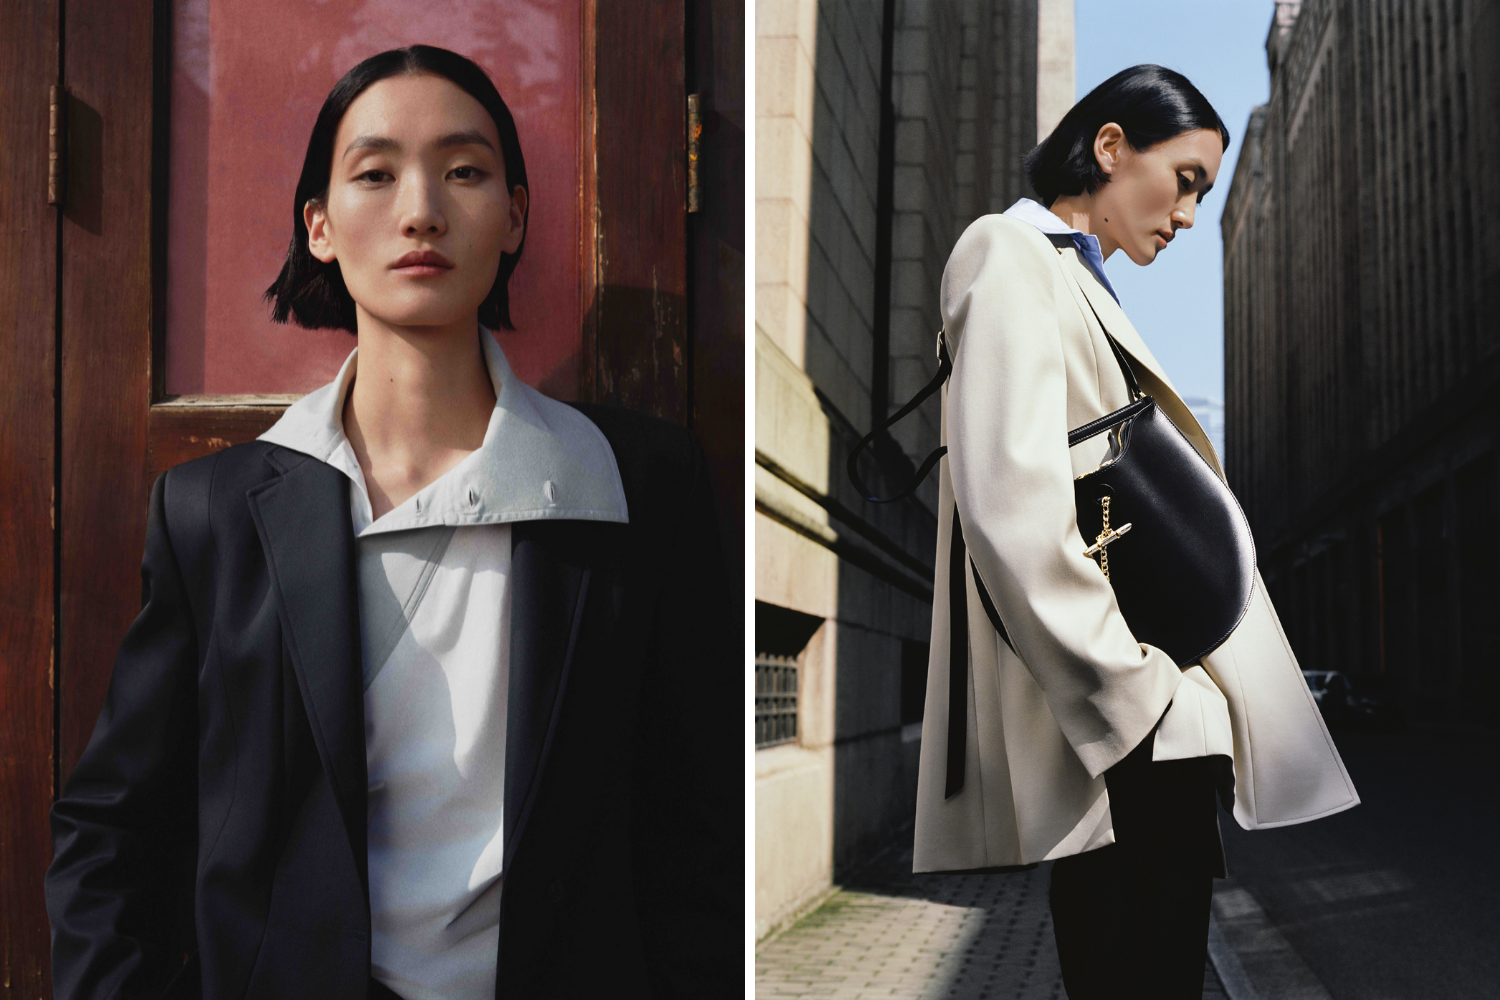 Designer Yuni Ahn Collaborates With Shanghai Tang For Pre-Fall 2021 Collection